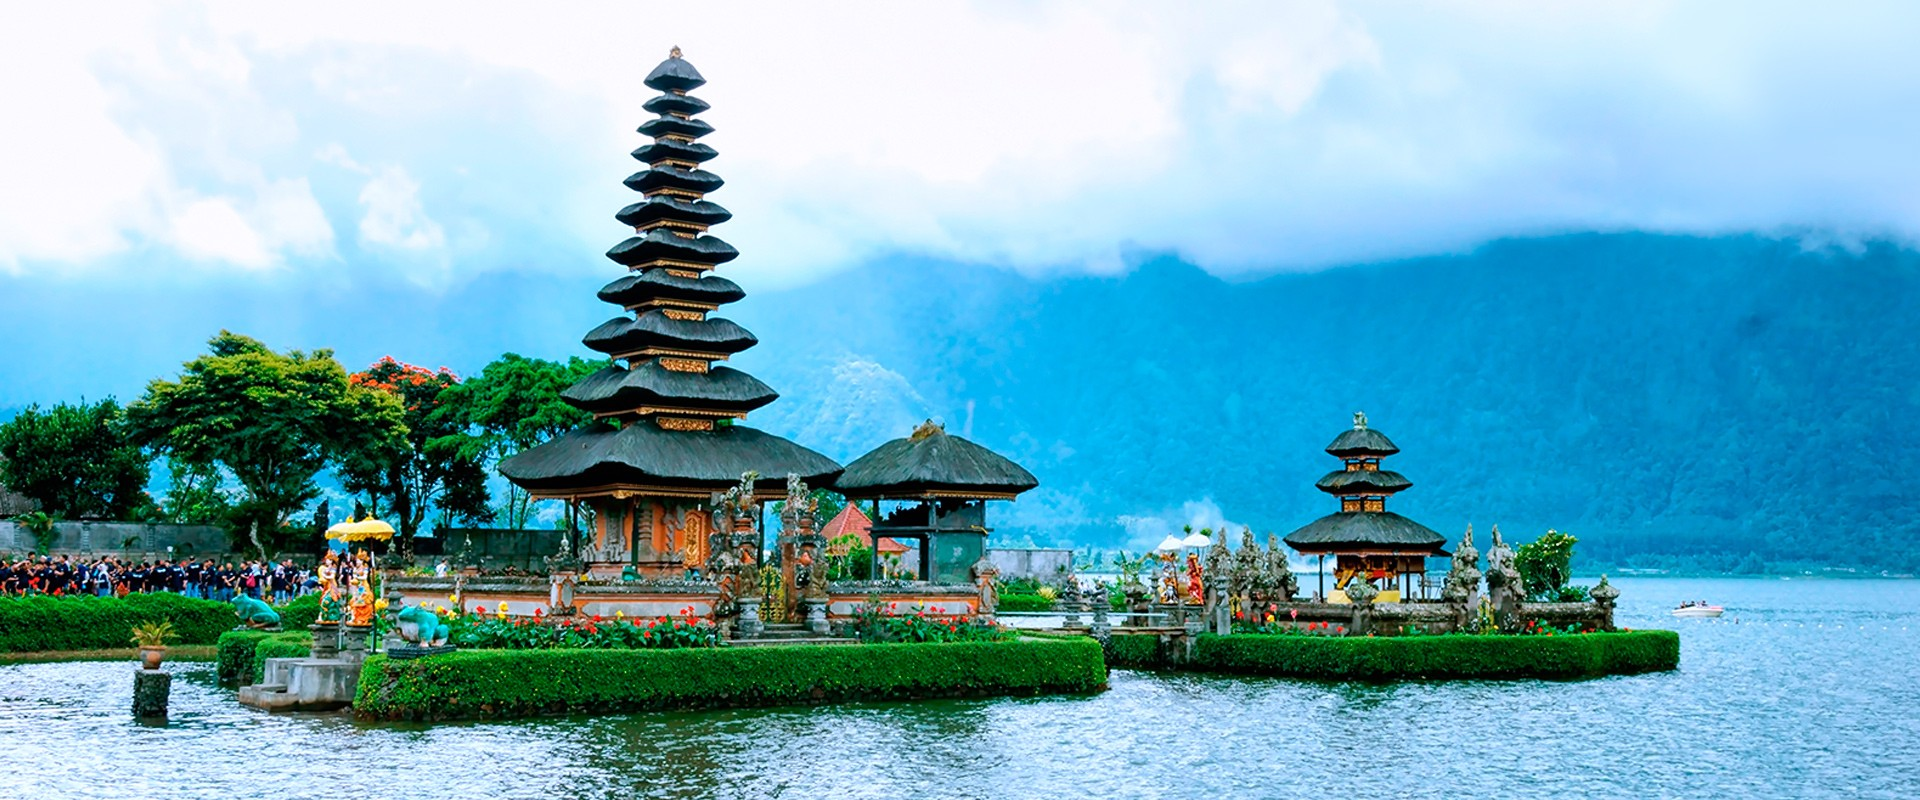 3D2N Bali Free And Easy Traveling